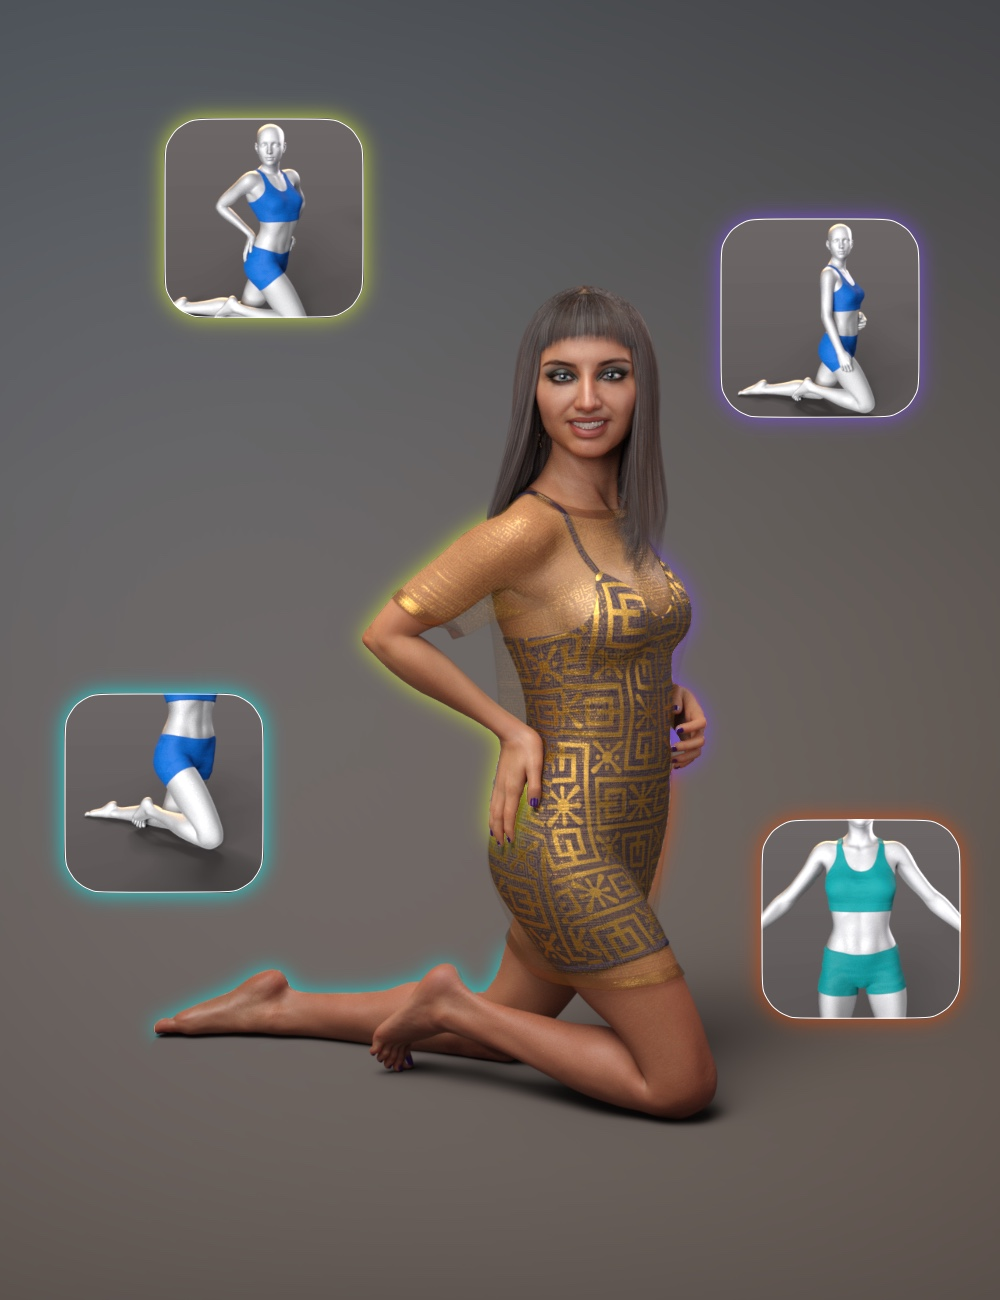 NG Build Your Own Kneeling Poses for Genesis 8 Female by: NewGuy, 3D Models by Daz 3D